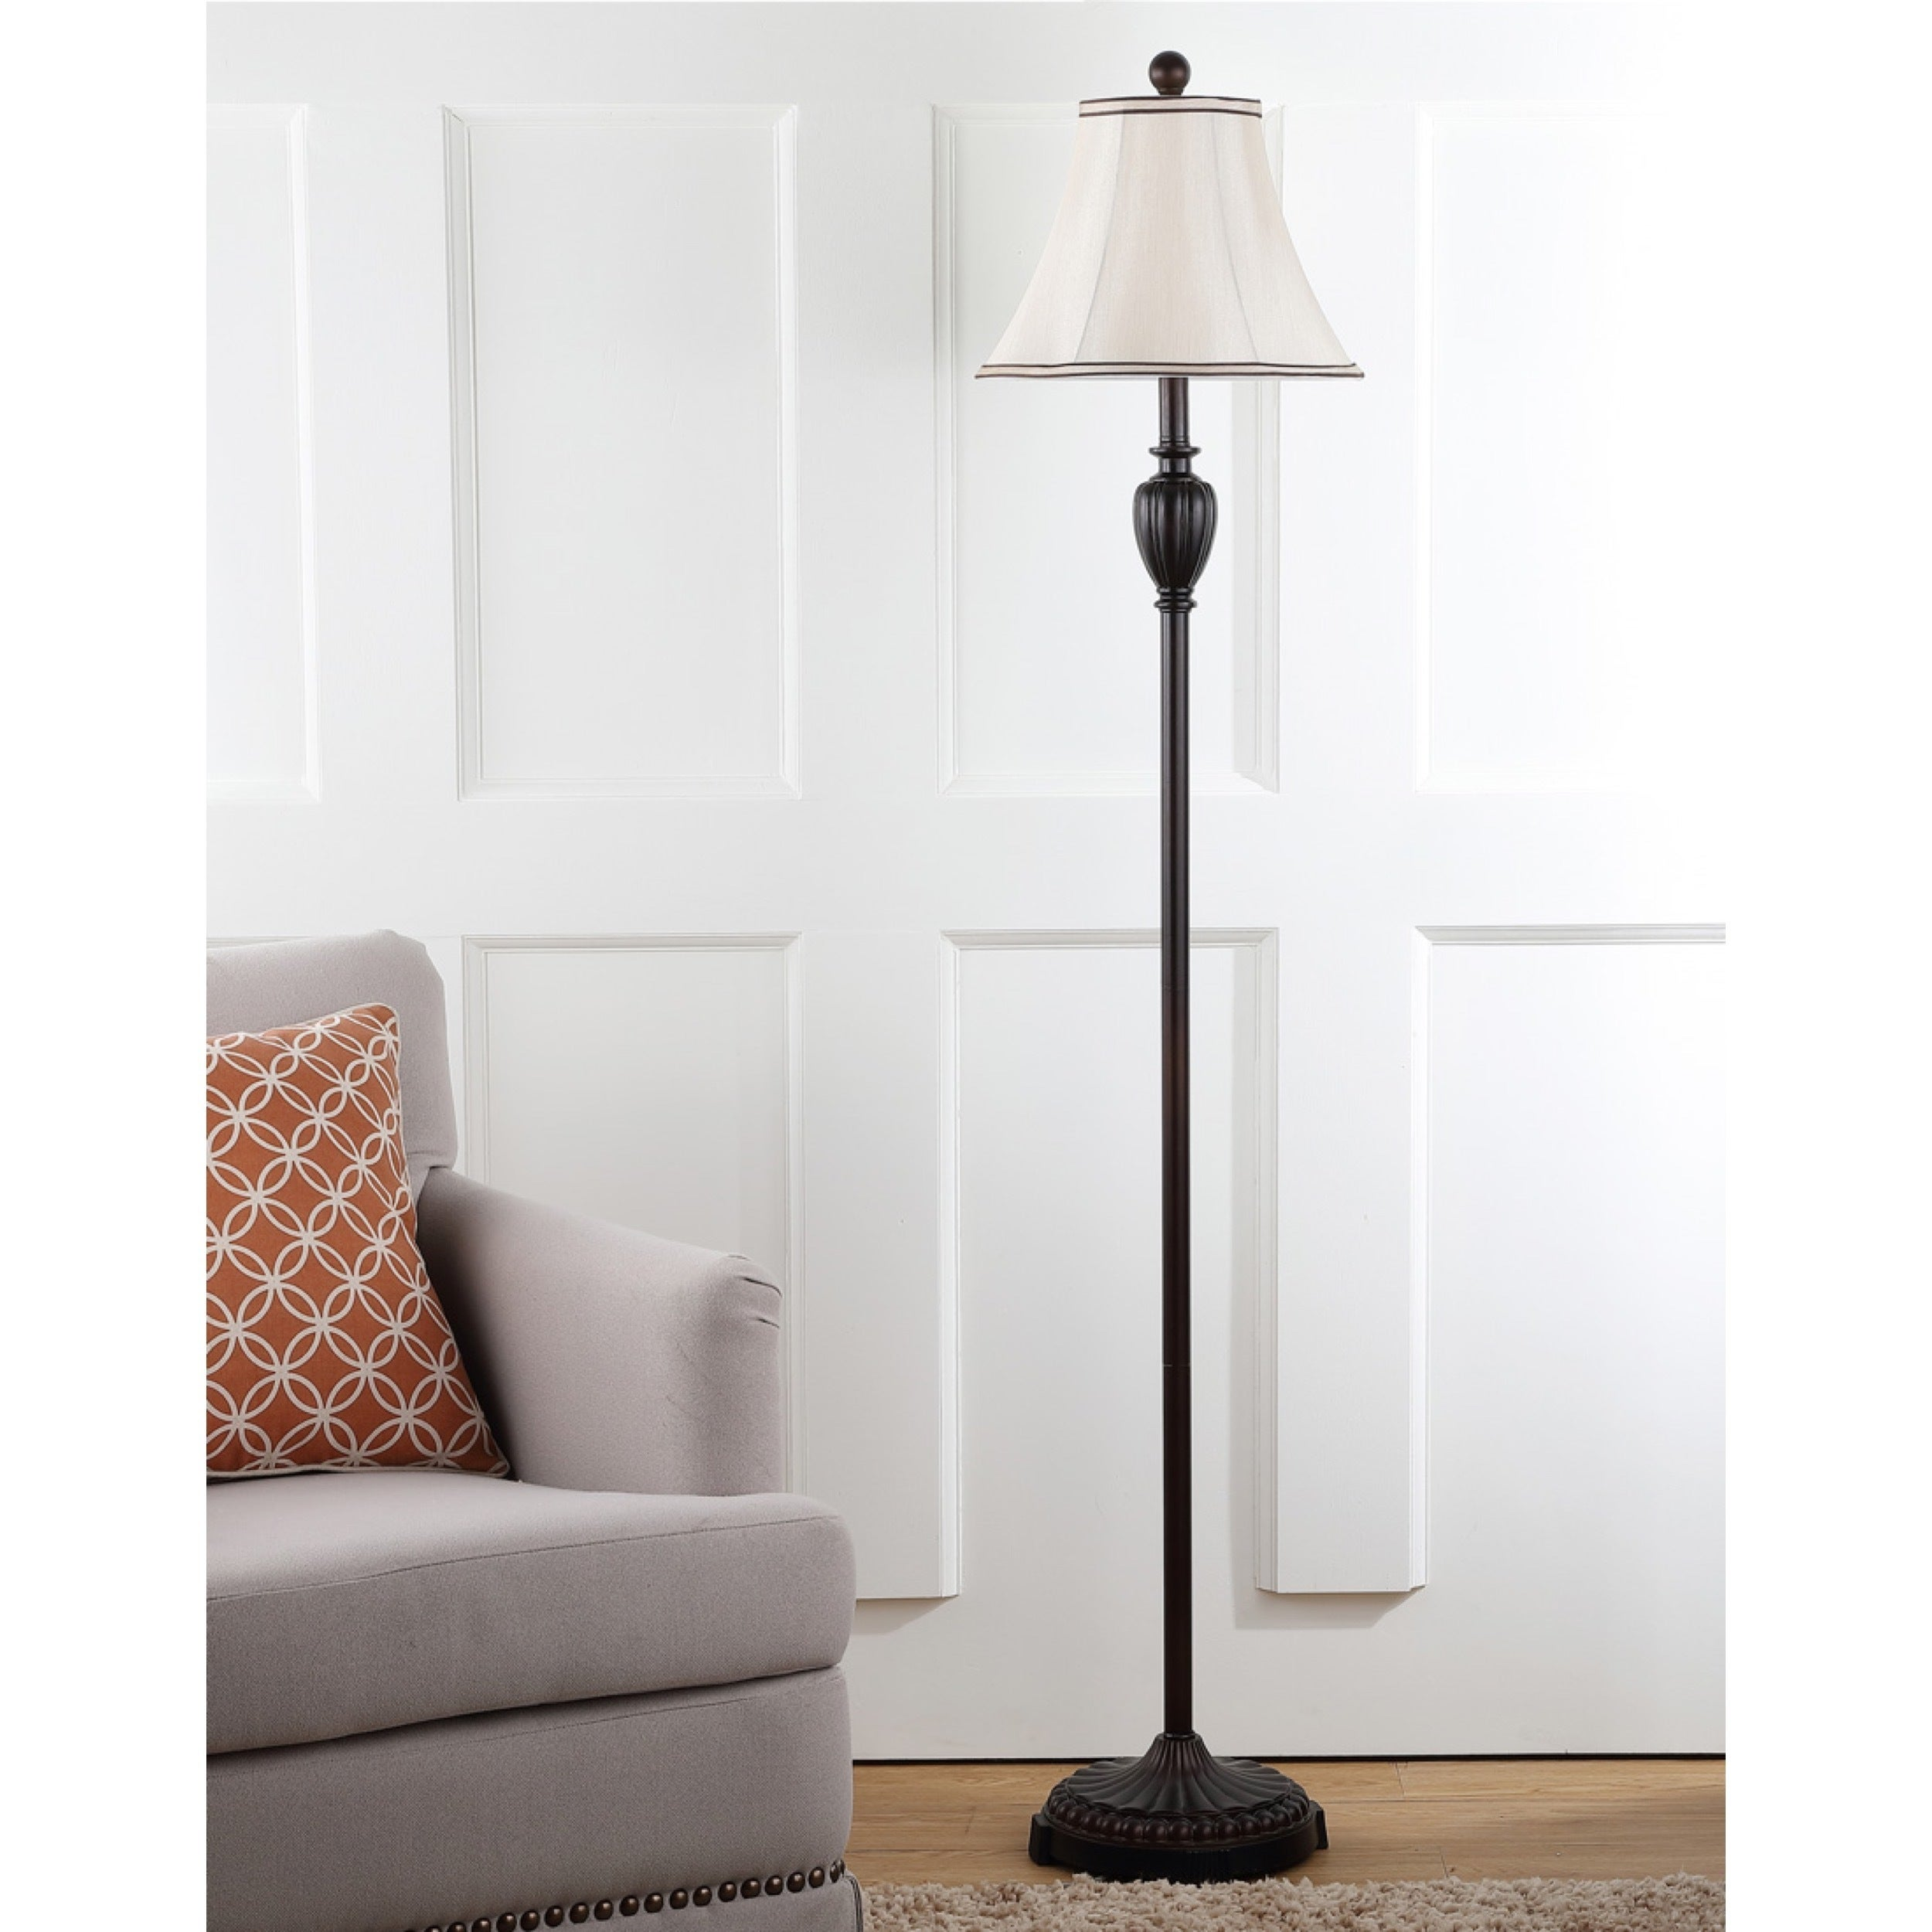 Shop safavieh lighting 61 inch antiqued steel classical floor lamp free shipping today overstock com 5517620